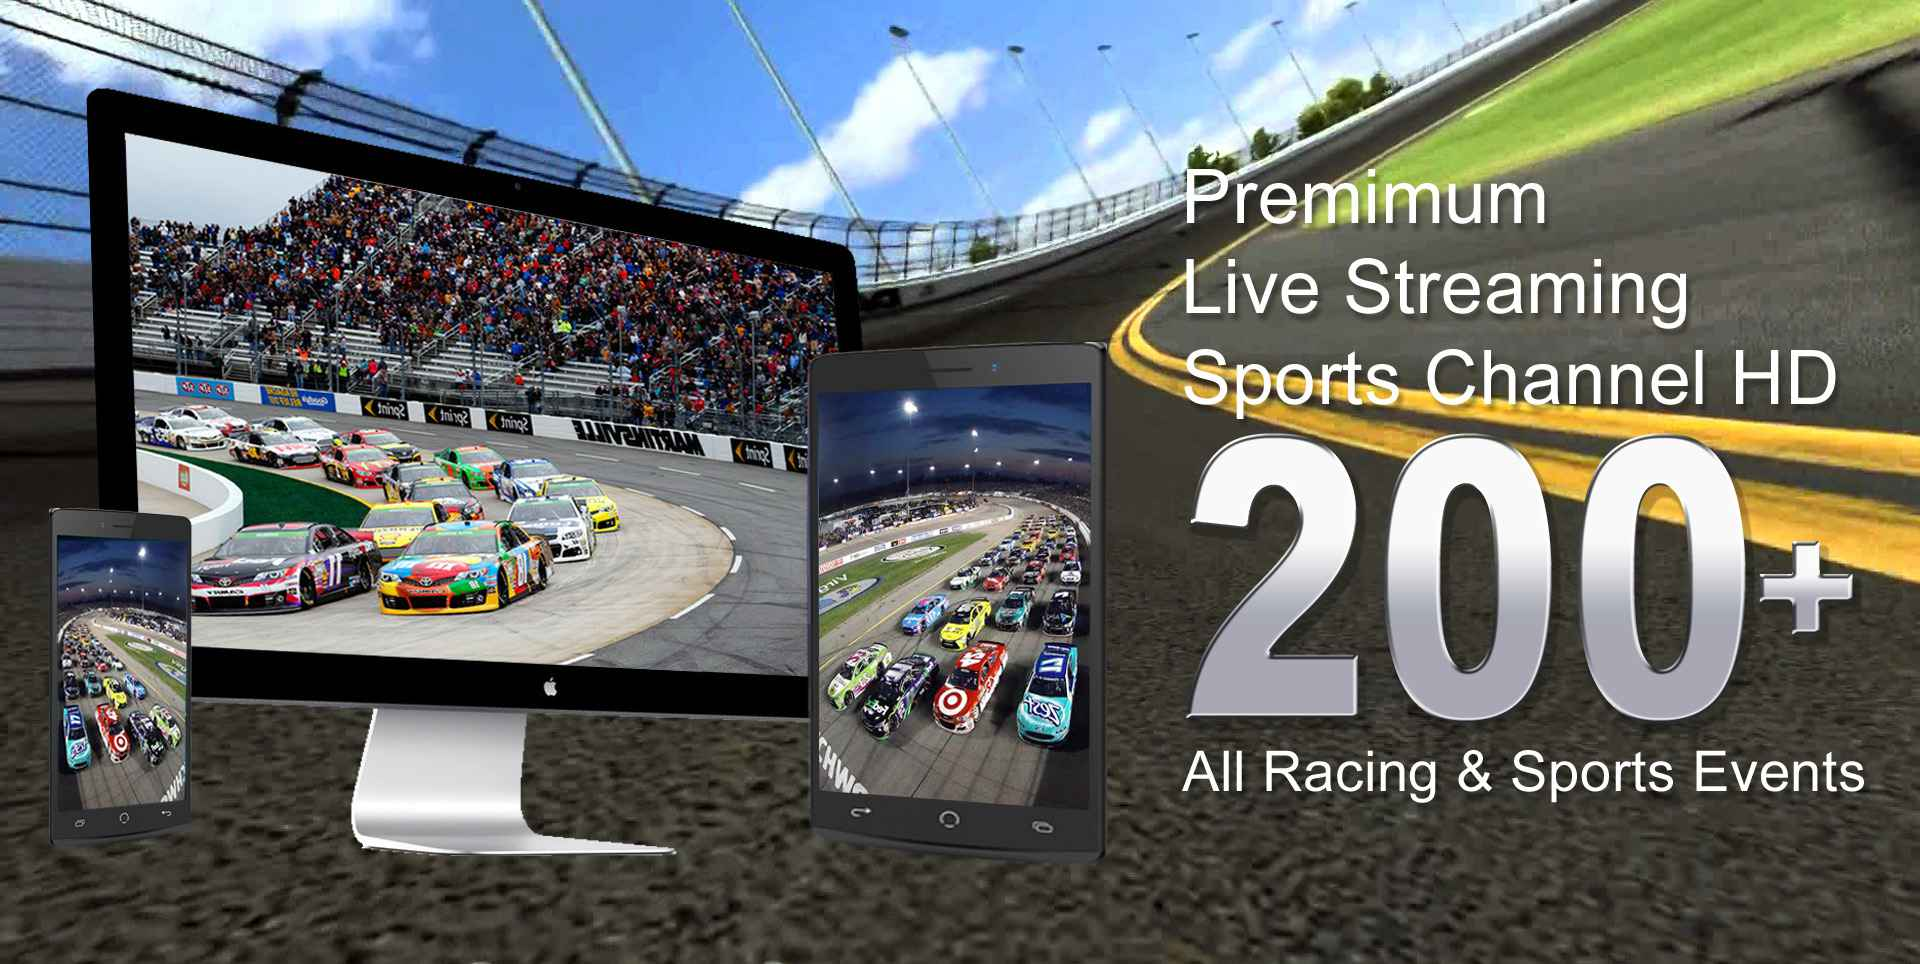 NASCAR Sprint Cup Series at Miami Live